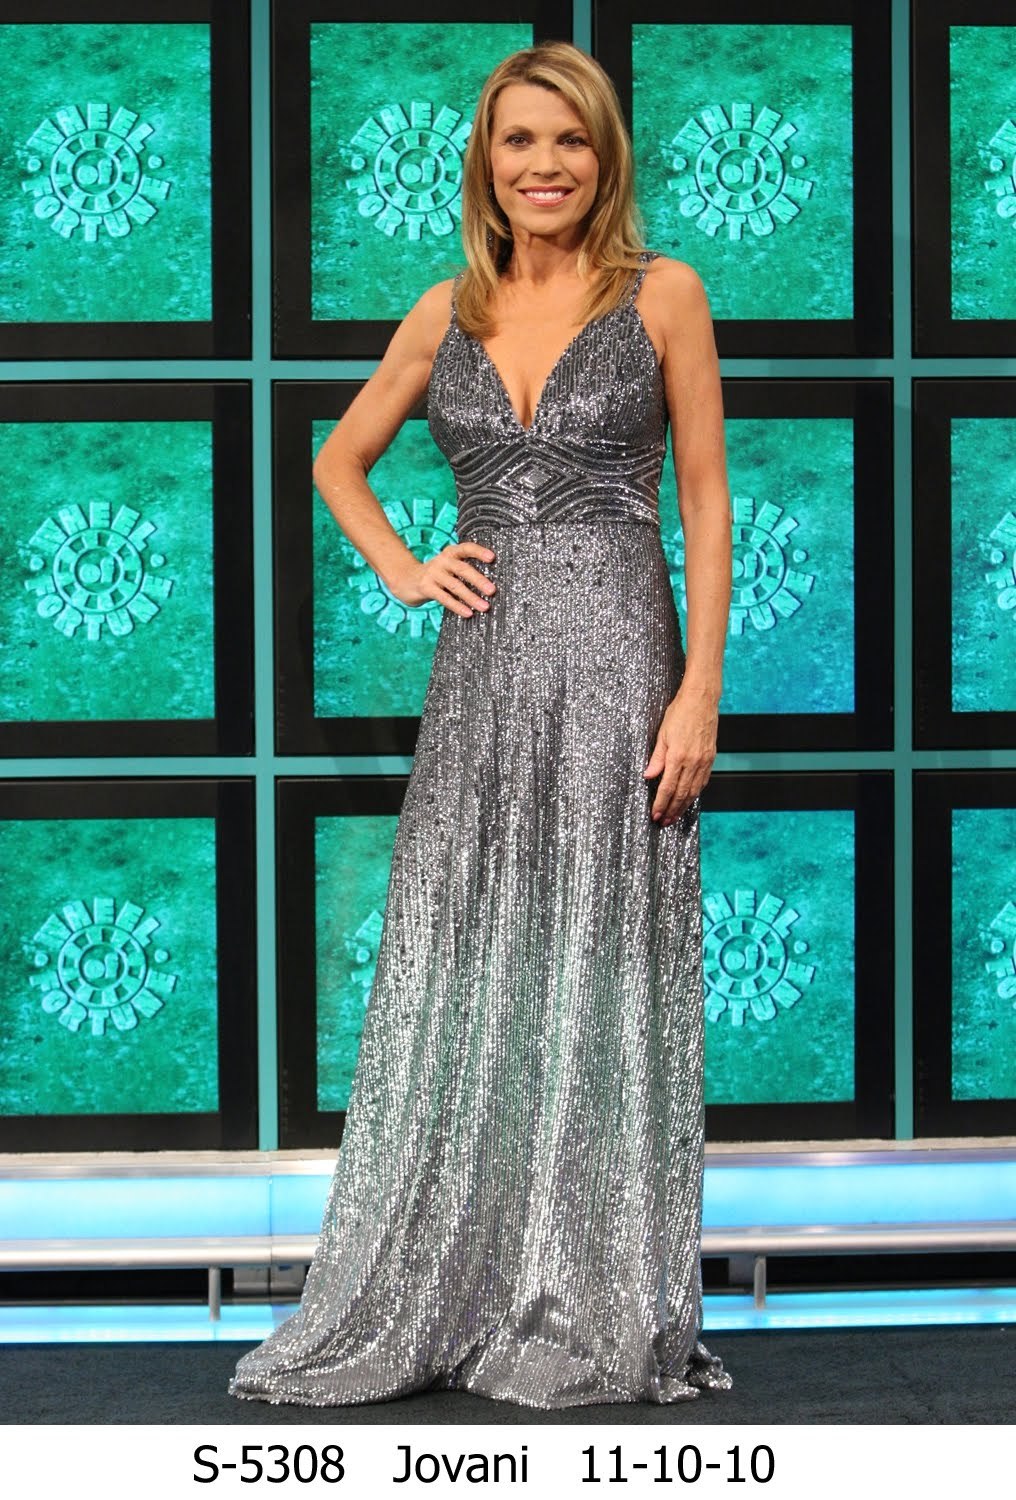 Jovani Fashions Blog: Look out for Vanna White in Jovani!